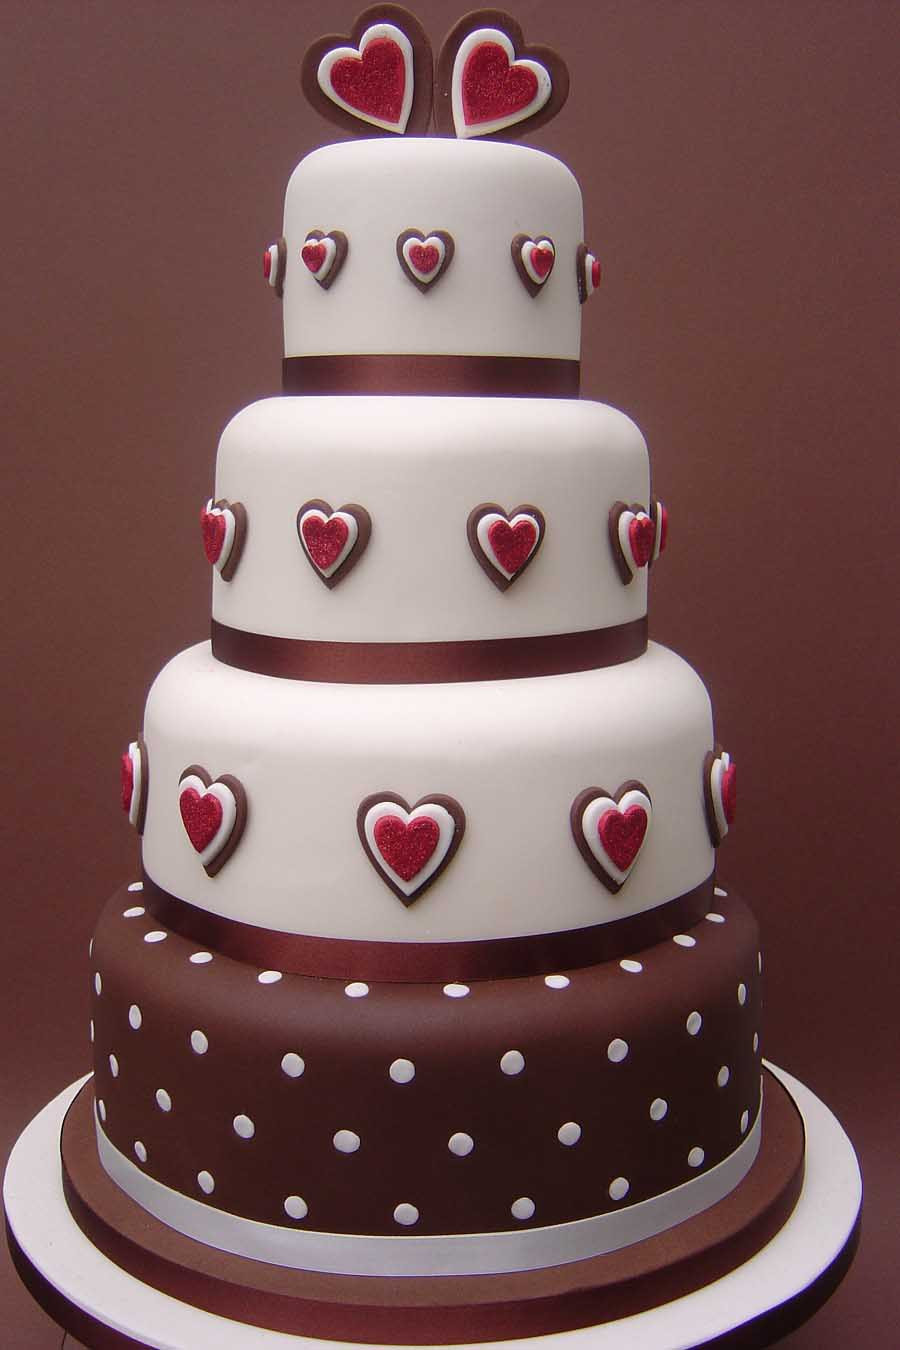 Wedding Cakes Designer  Latest Wedding Cake Designs Starsricha